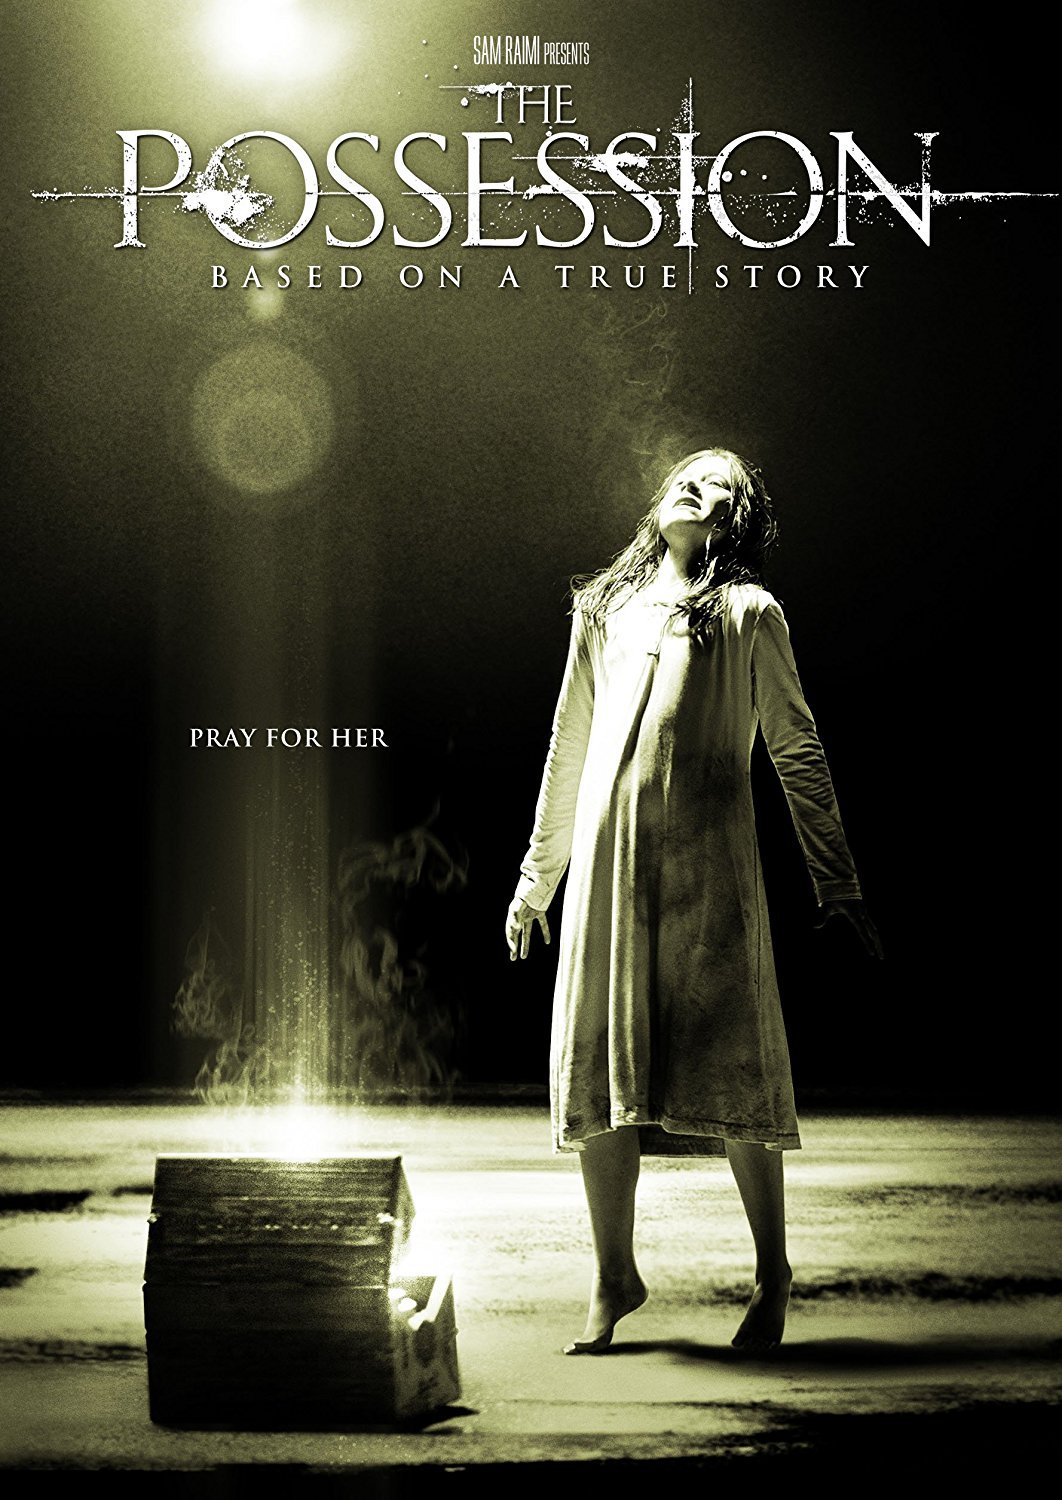 The Possession (DVD, 2013)